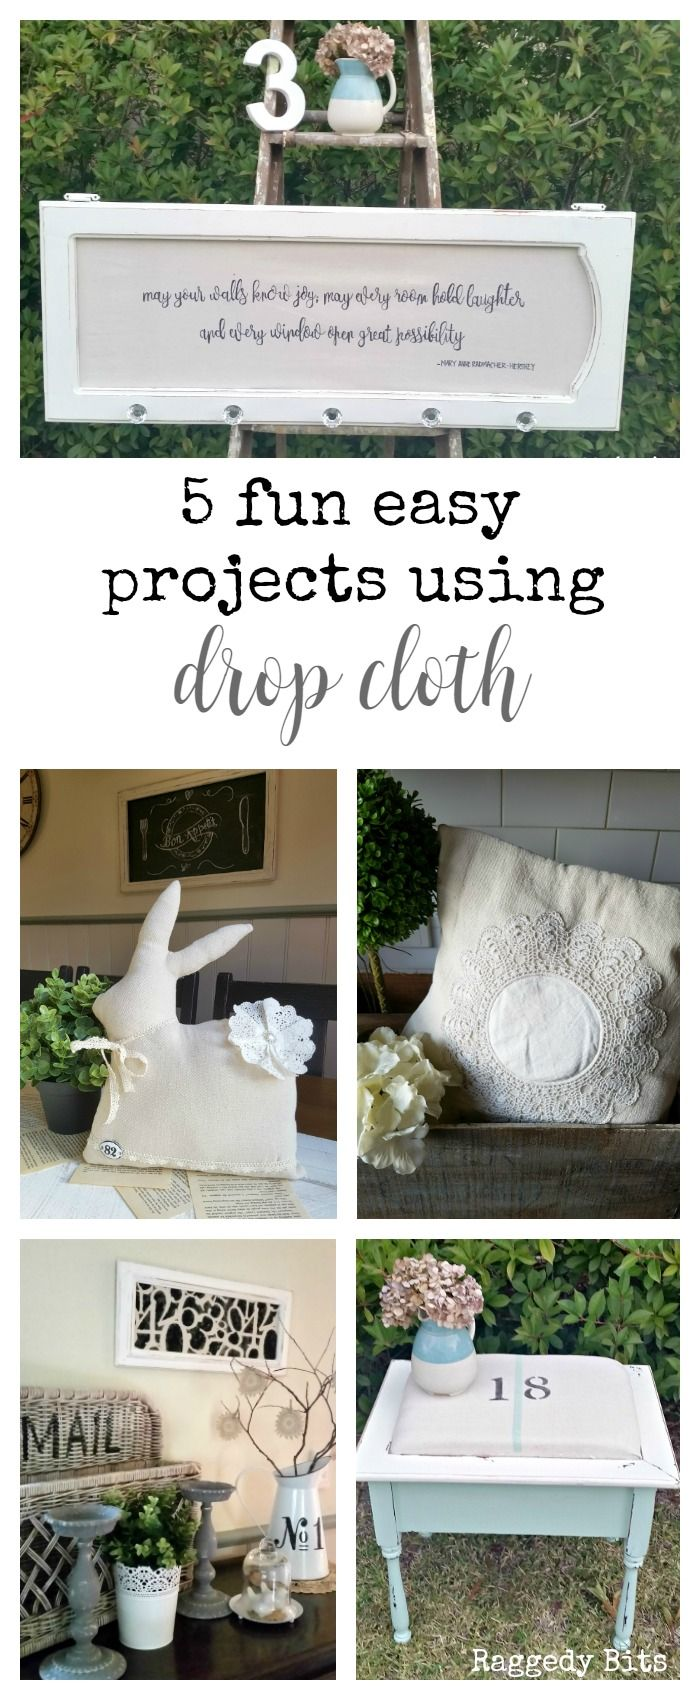 Who would have thought that Drop Cloths could be used for more than just paint spills? Sharing 5 Fun Easy Projects using Drop Cloth | Full Tutorials | www.raggedy-bits.com